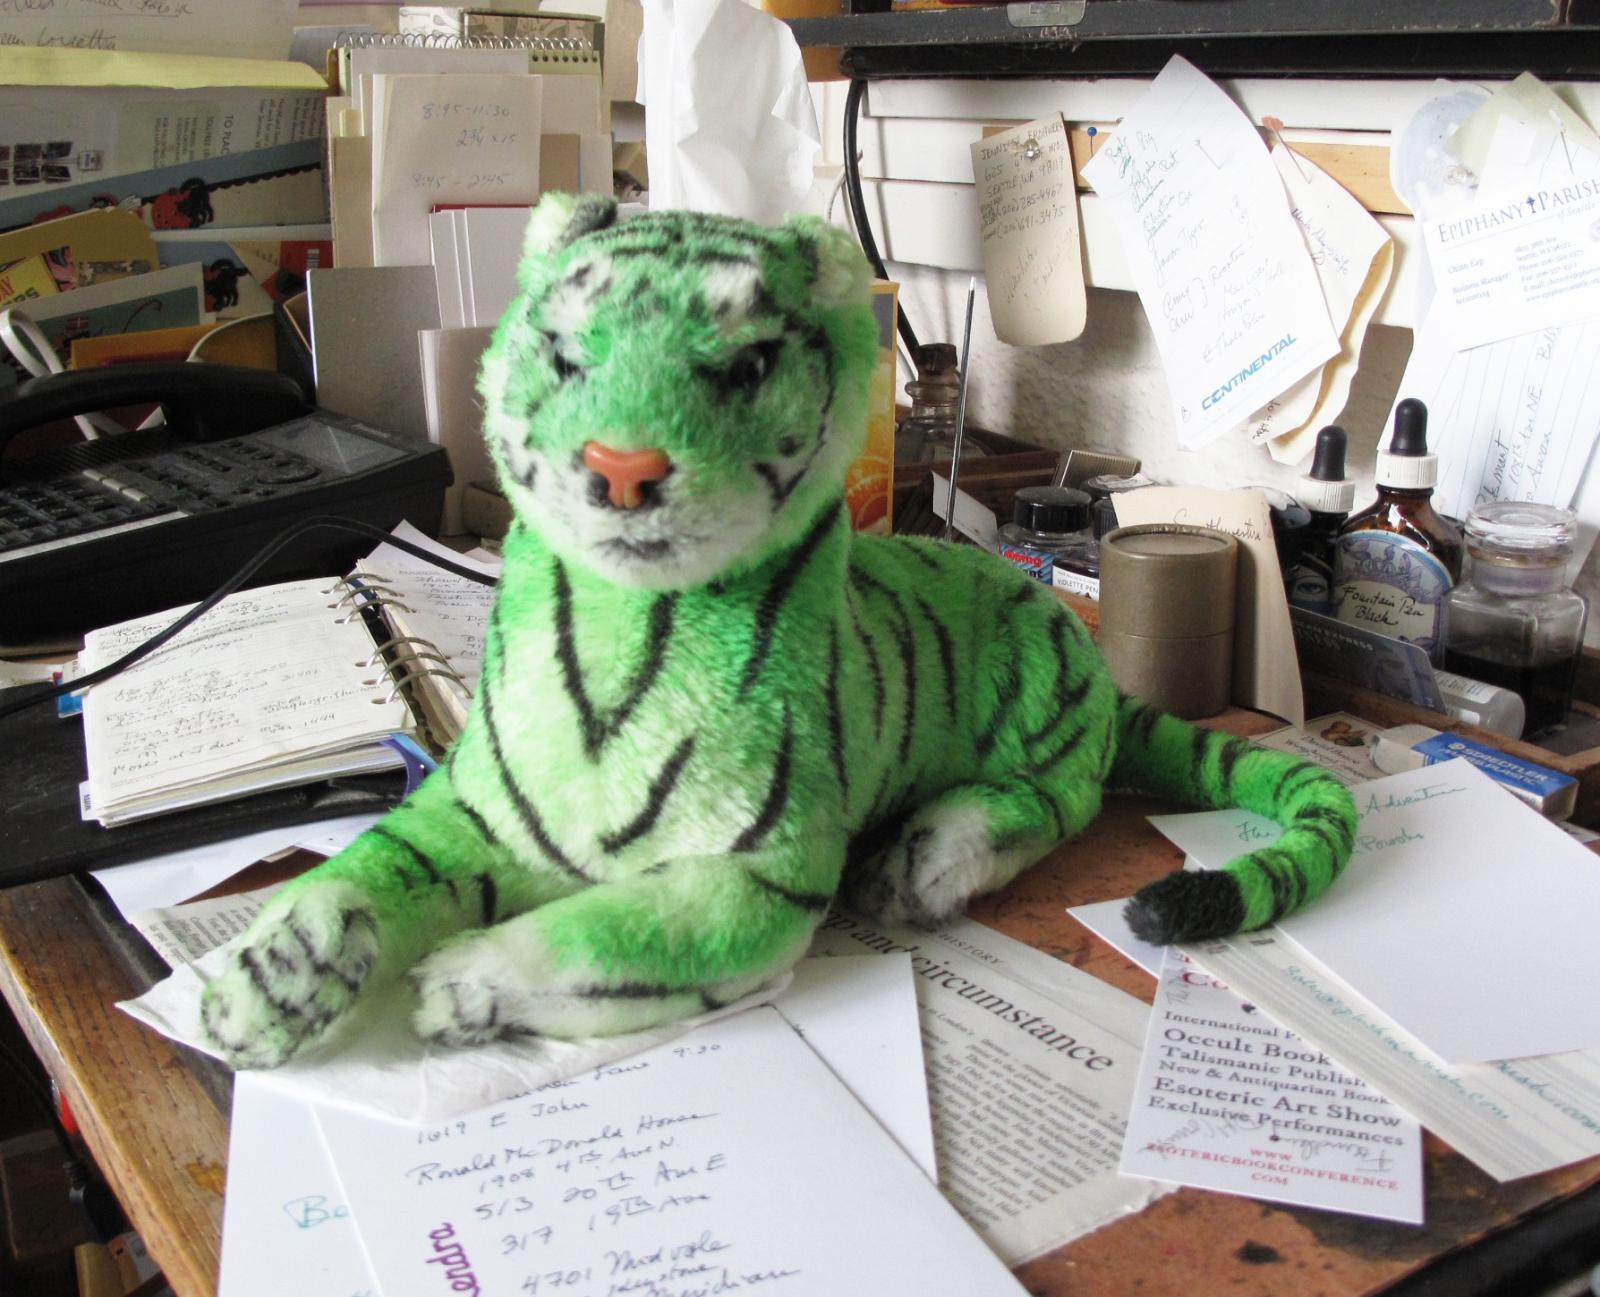 Green Tiger Guarding the Desk